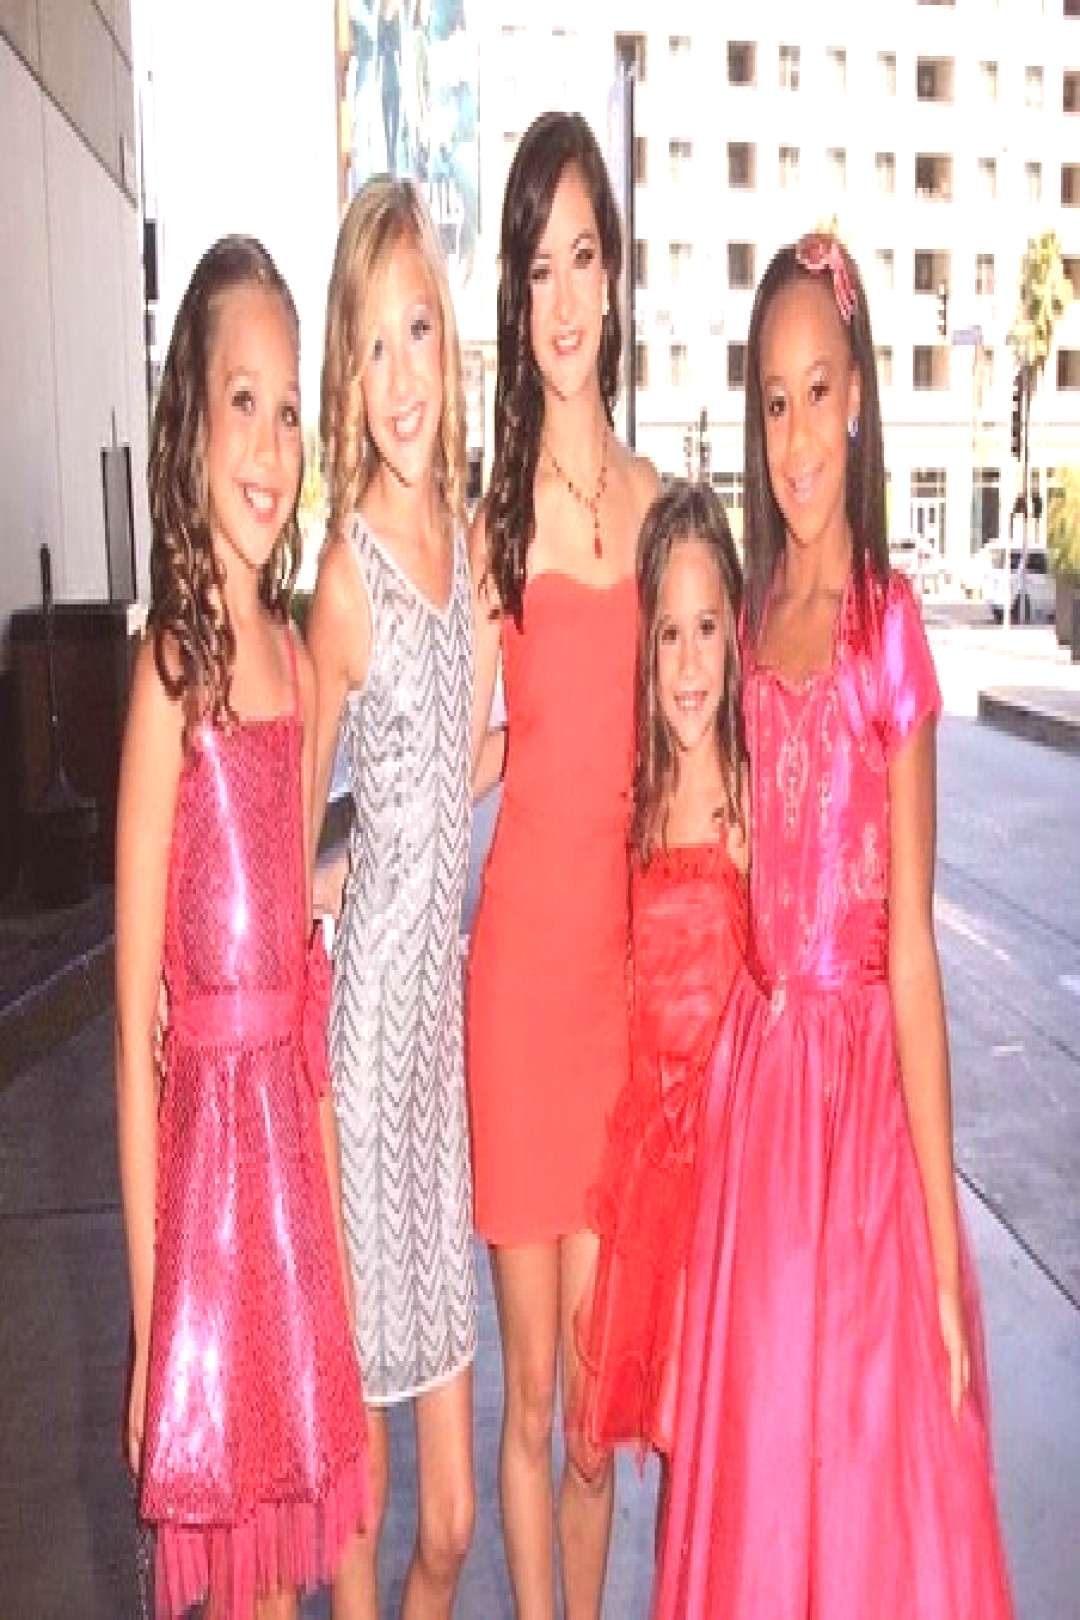 Dance Moms on May 30 2020 and 5 people people standing